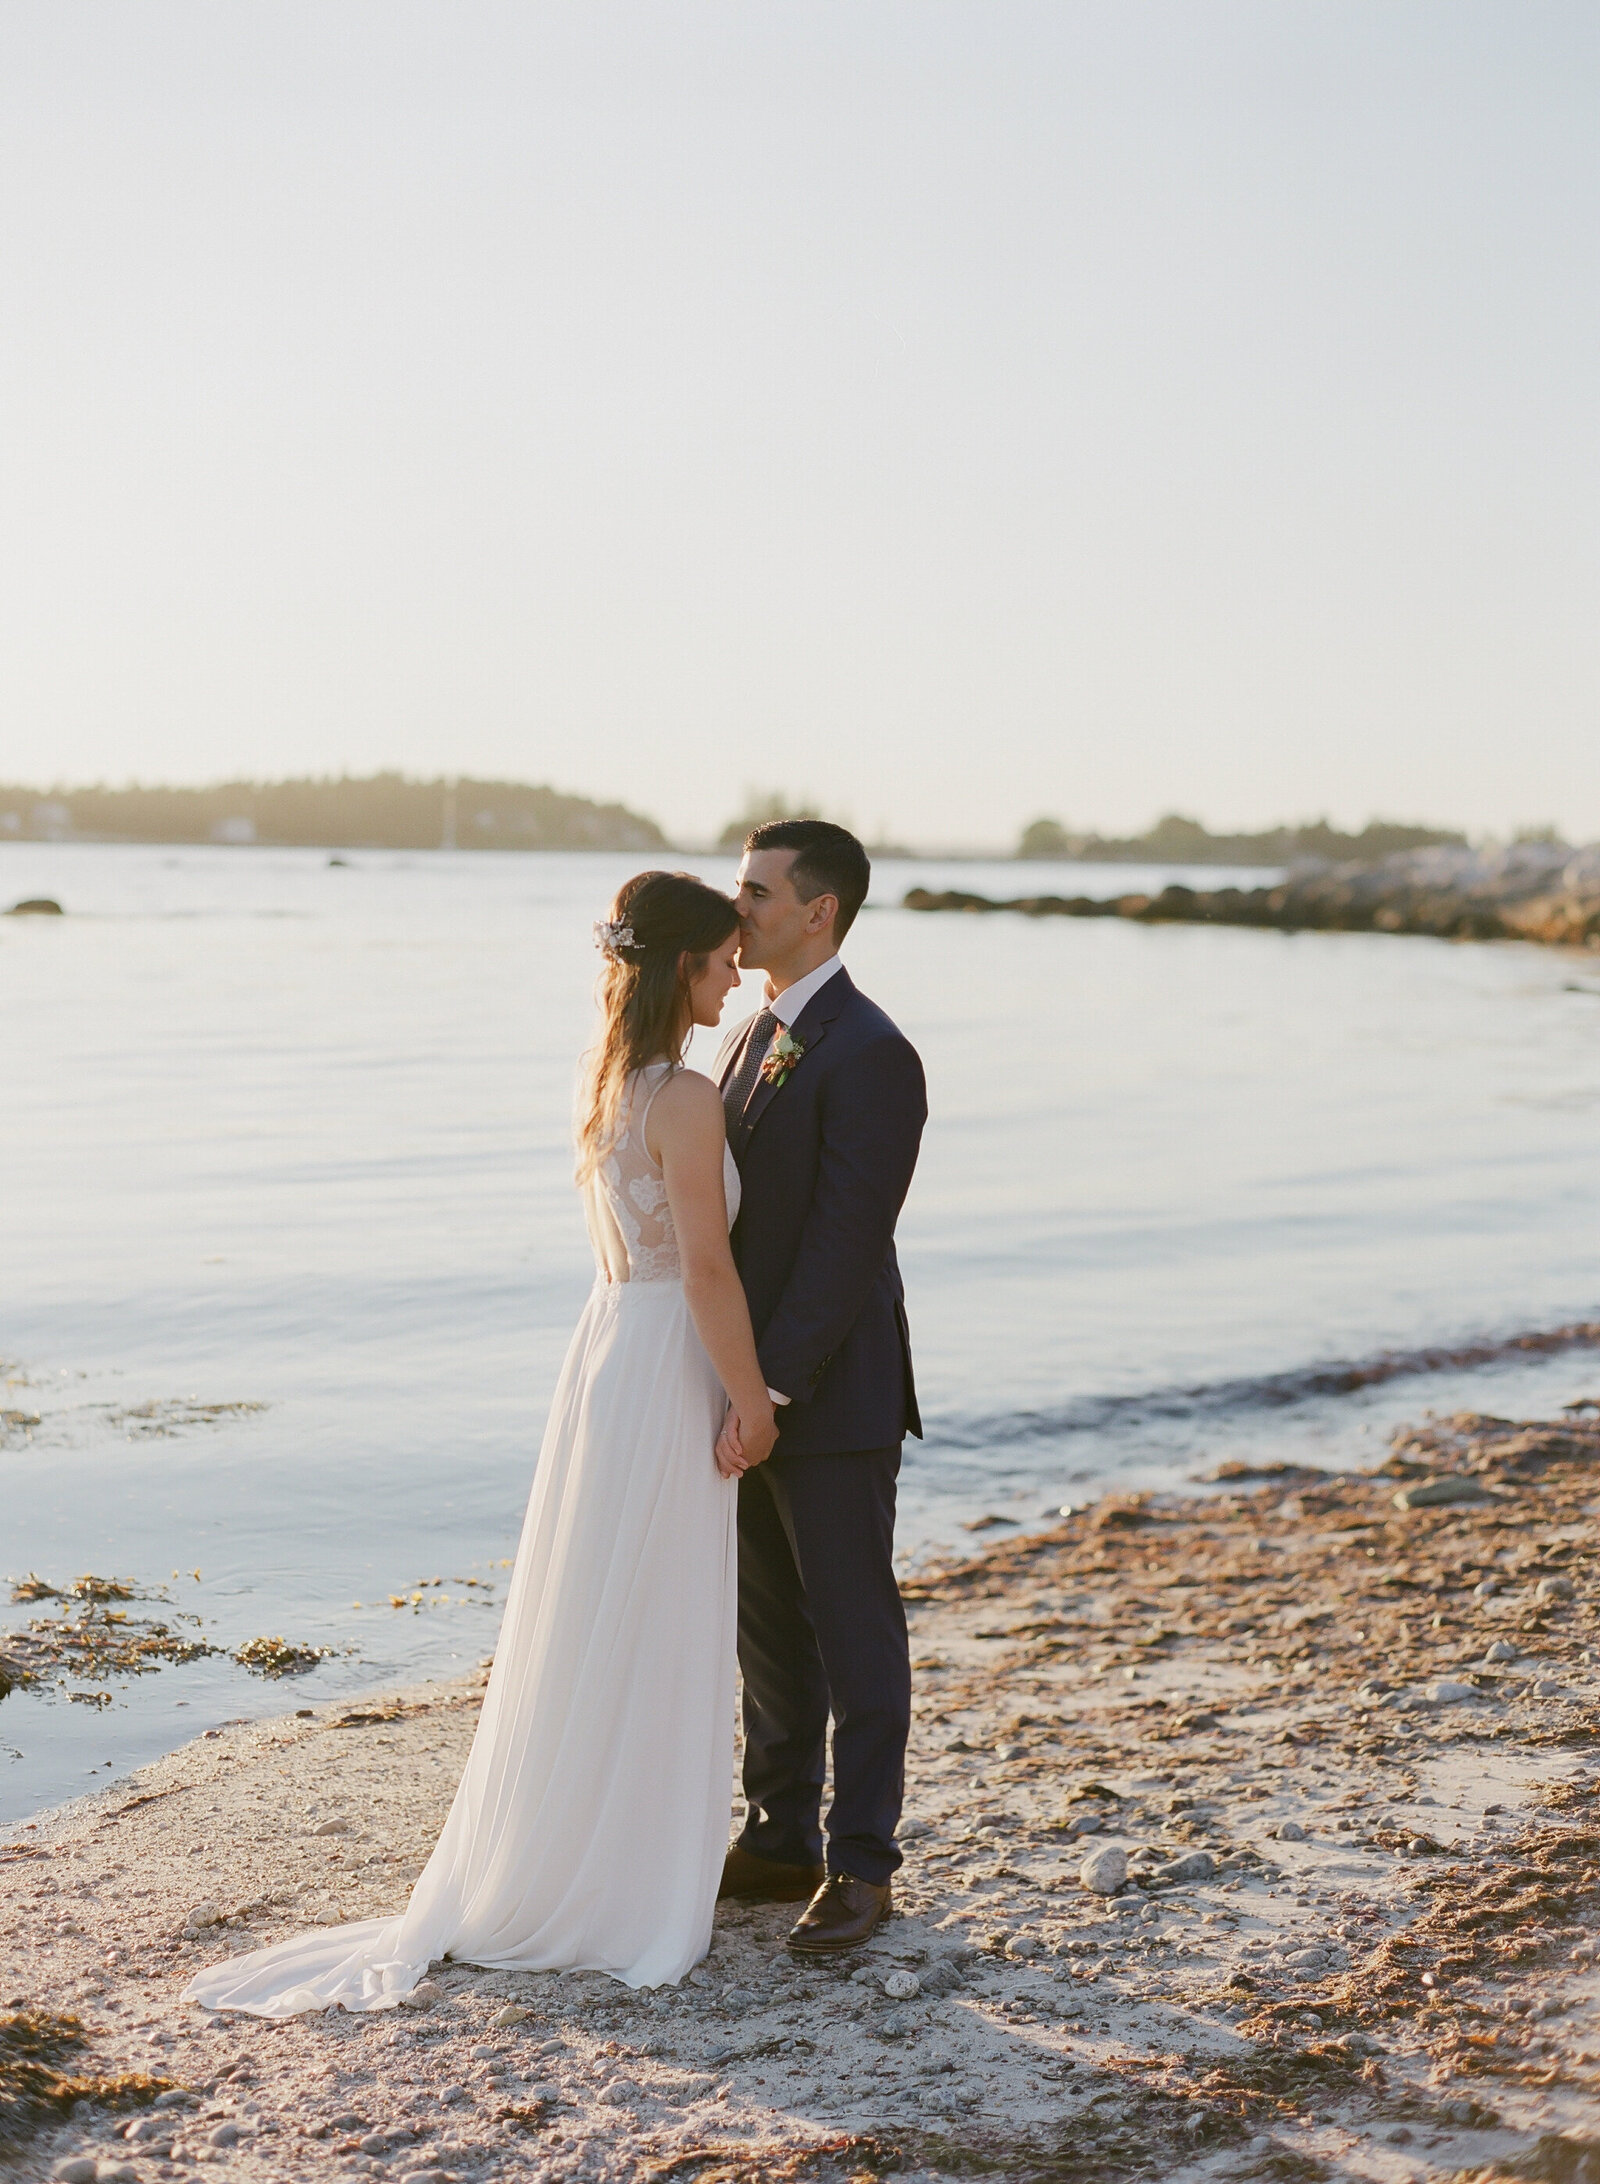 Jacqueline Anne Photography - Halifax Wedding Photographer - Jaclyn and Morgan-88